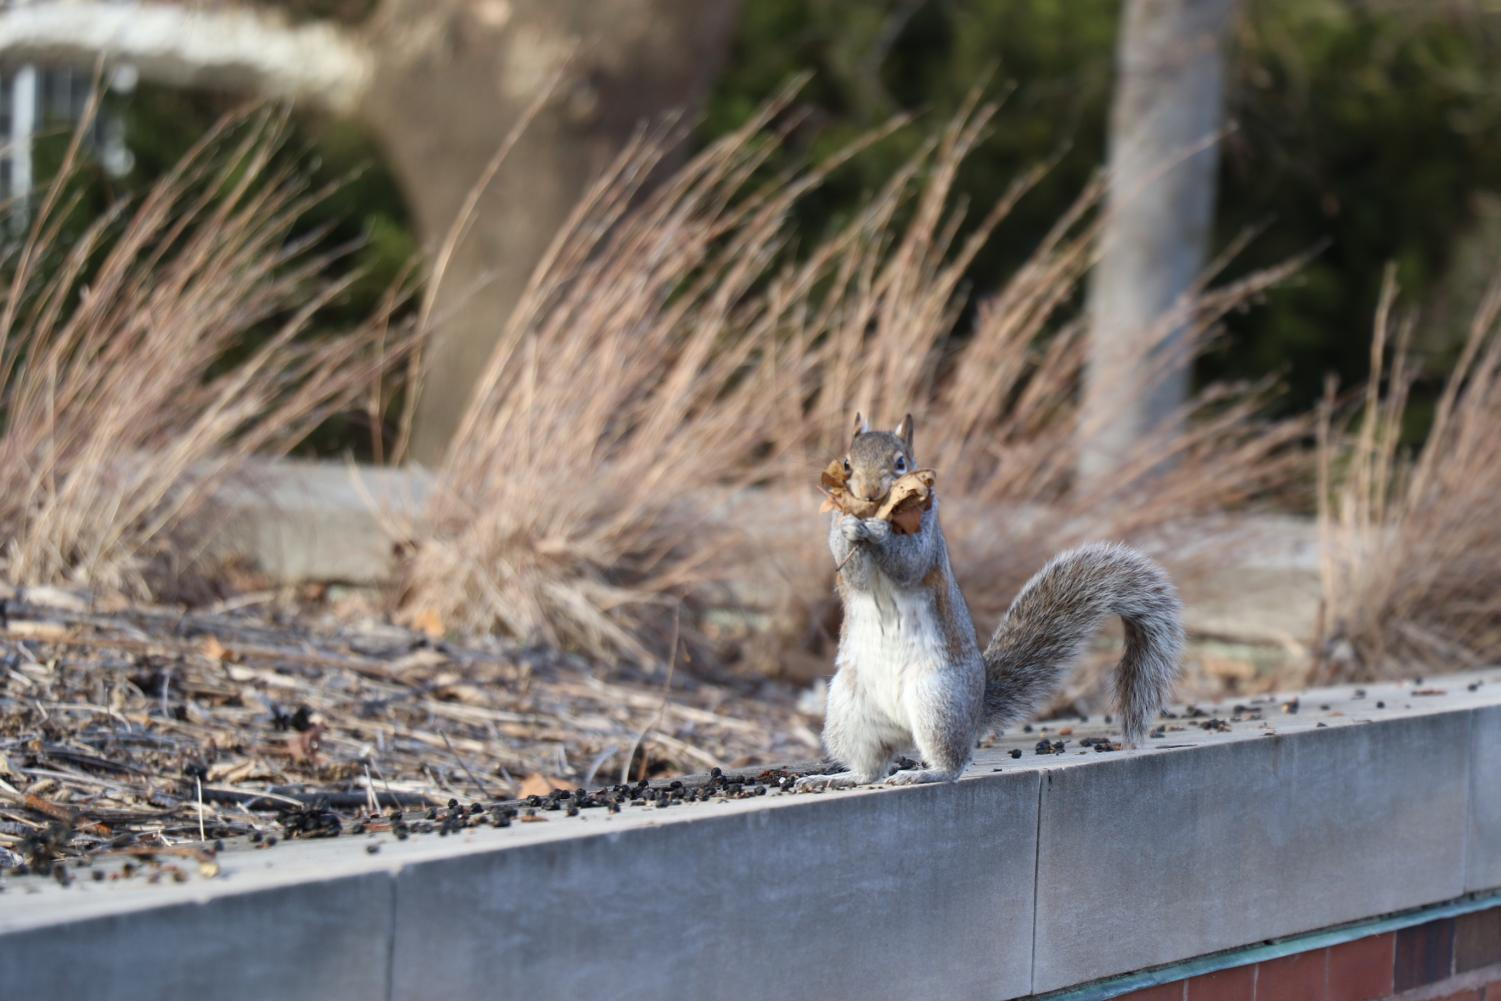 A squirrel gathers leaves near the Undergraduate Library on Feb. 10.